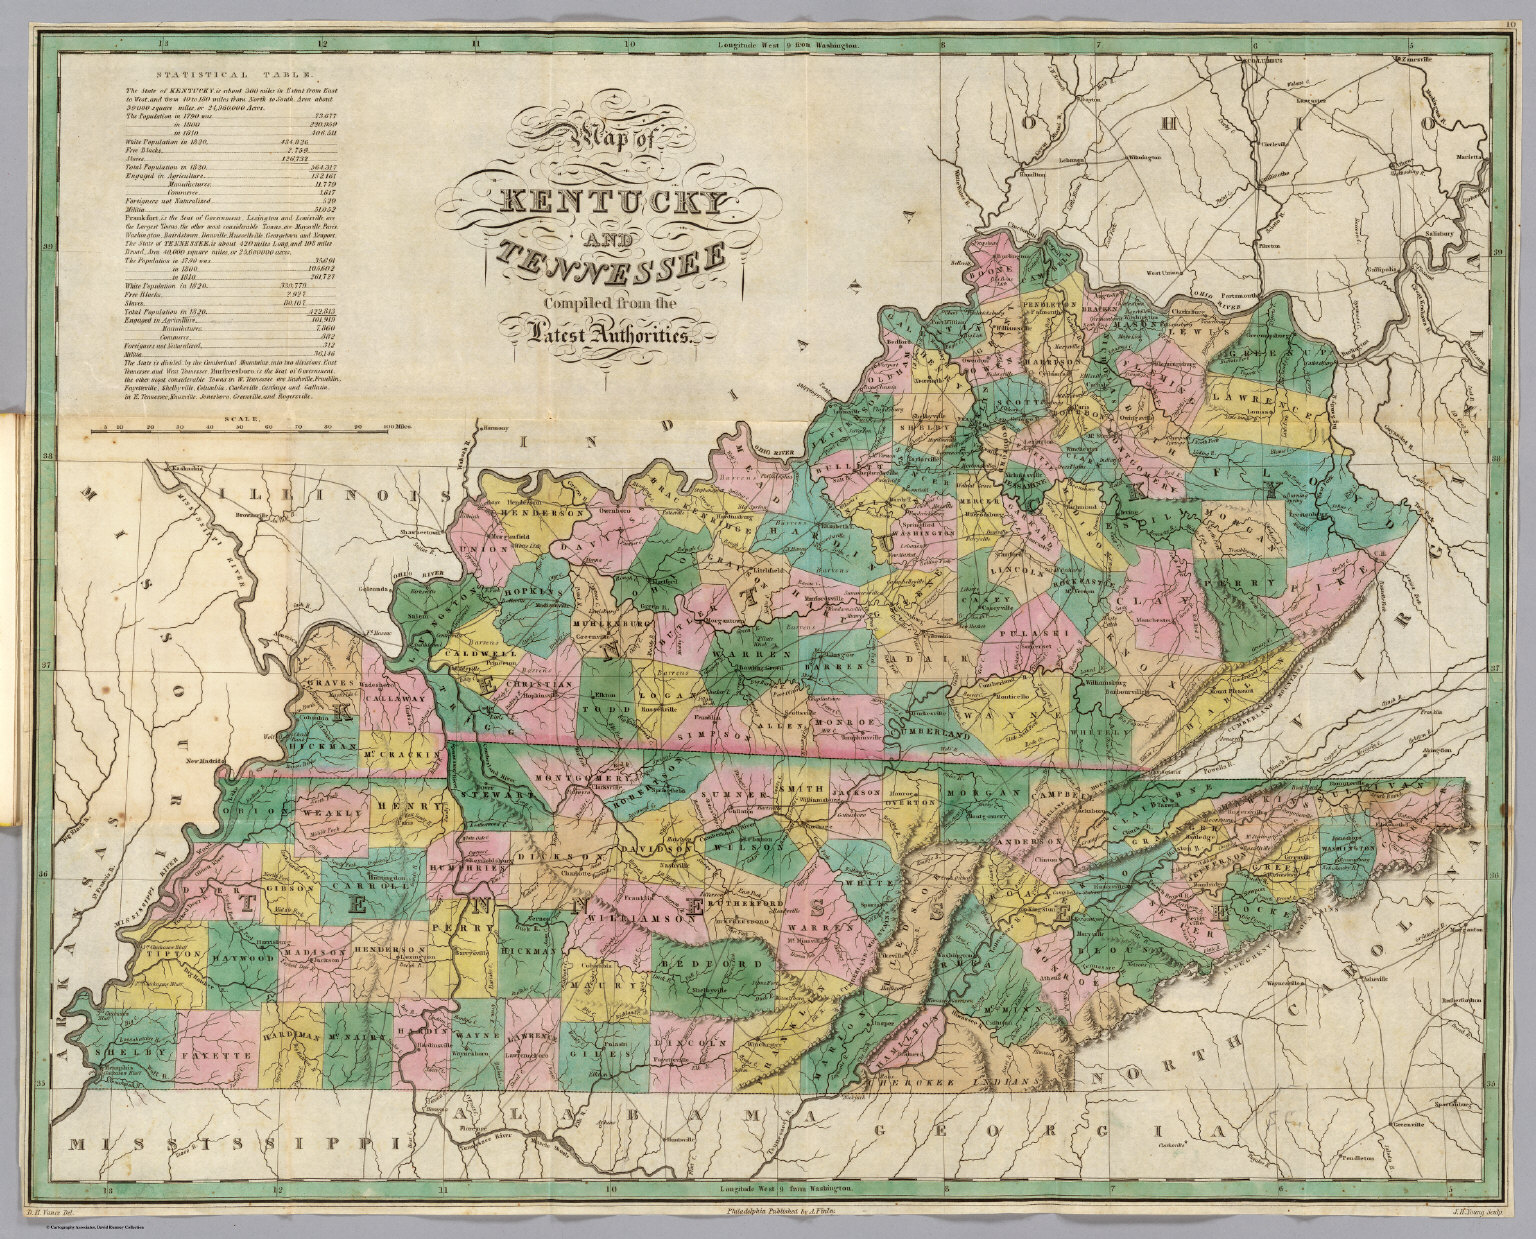 Kentucky Tennessee David Rumsey Historical Map Collection